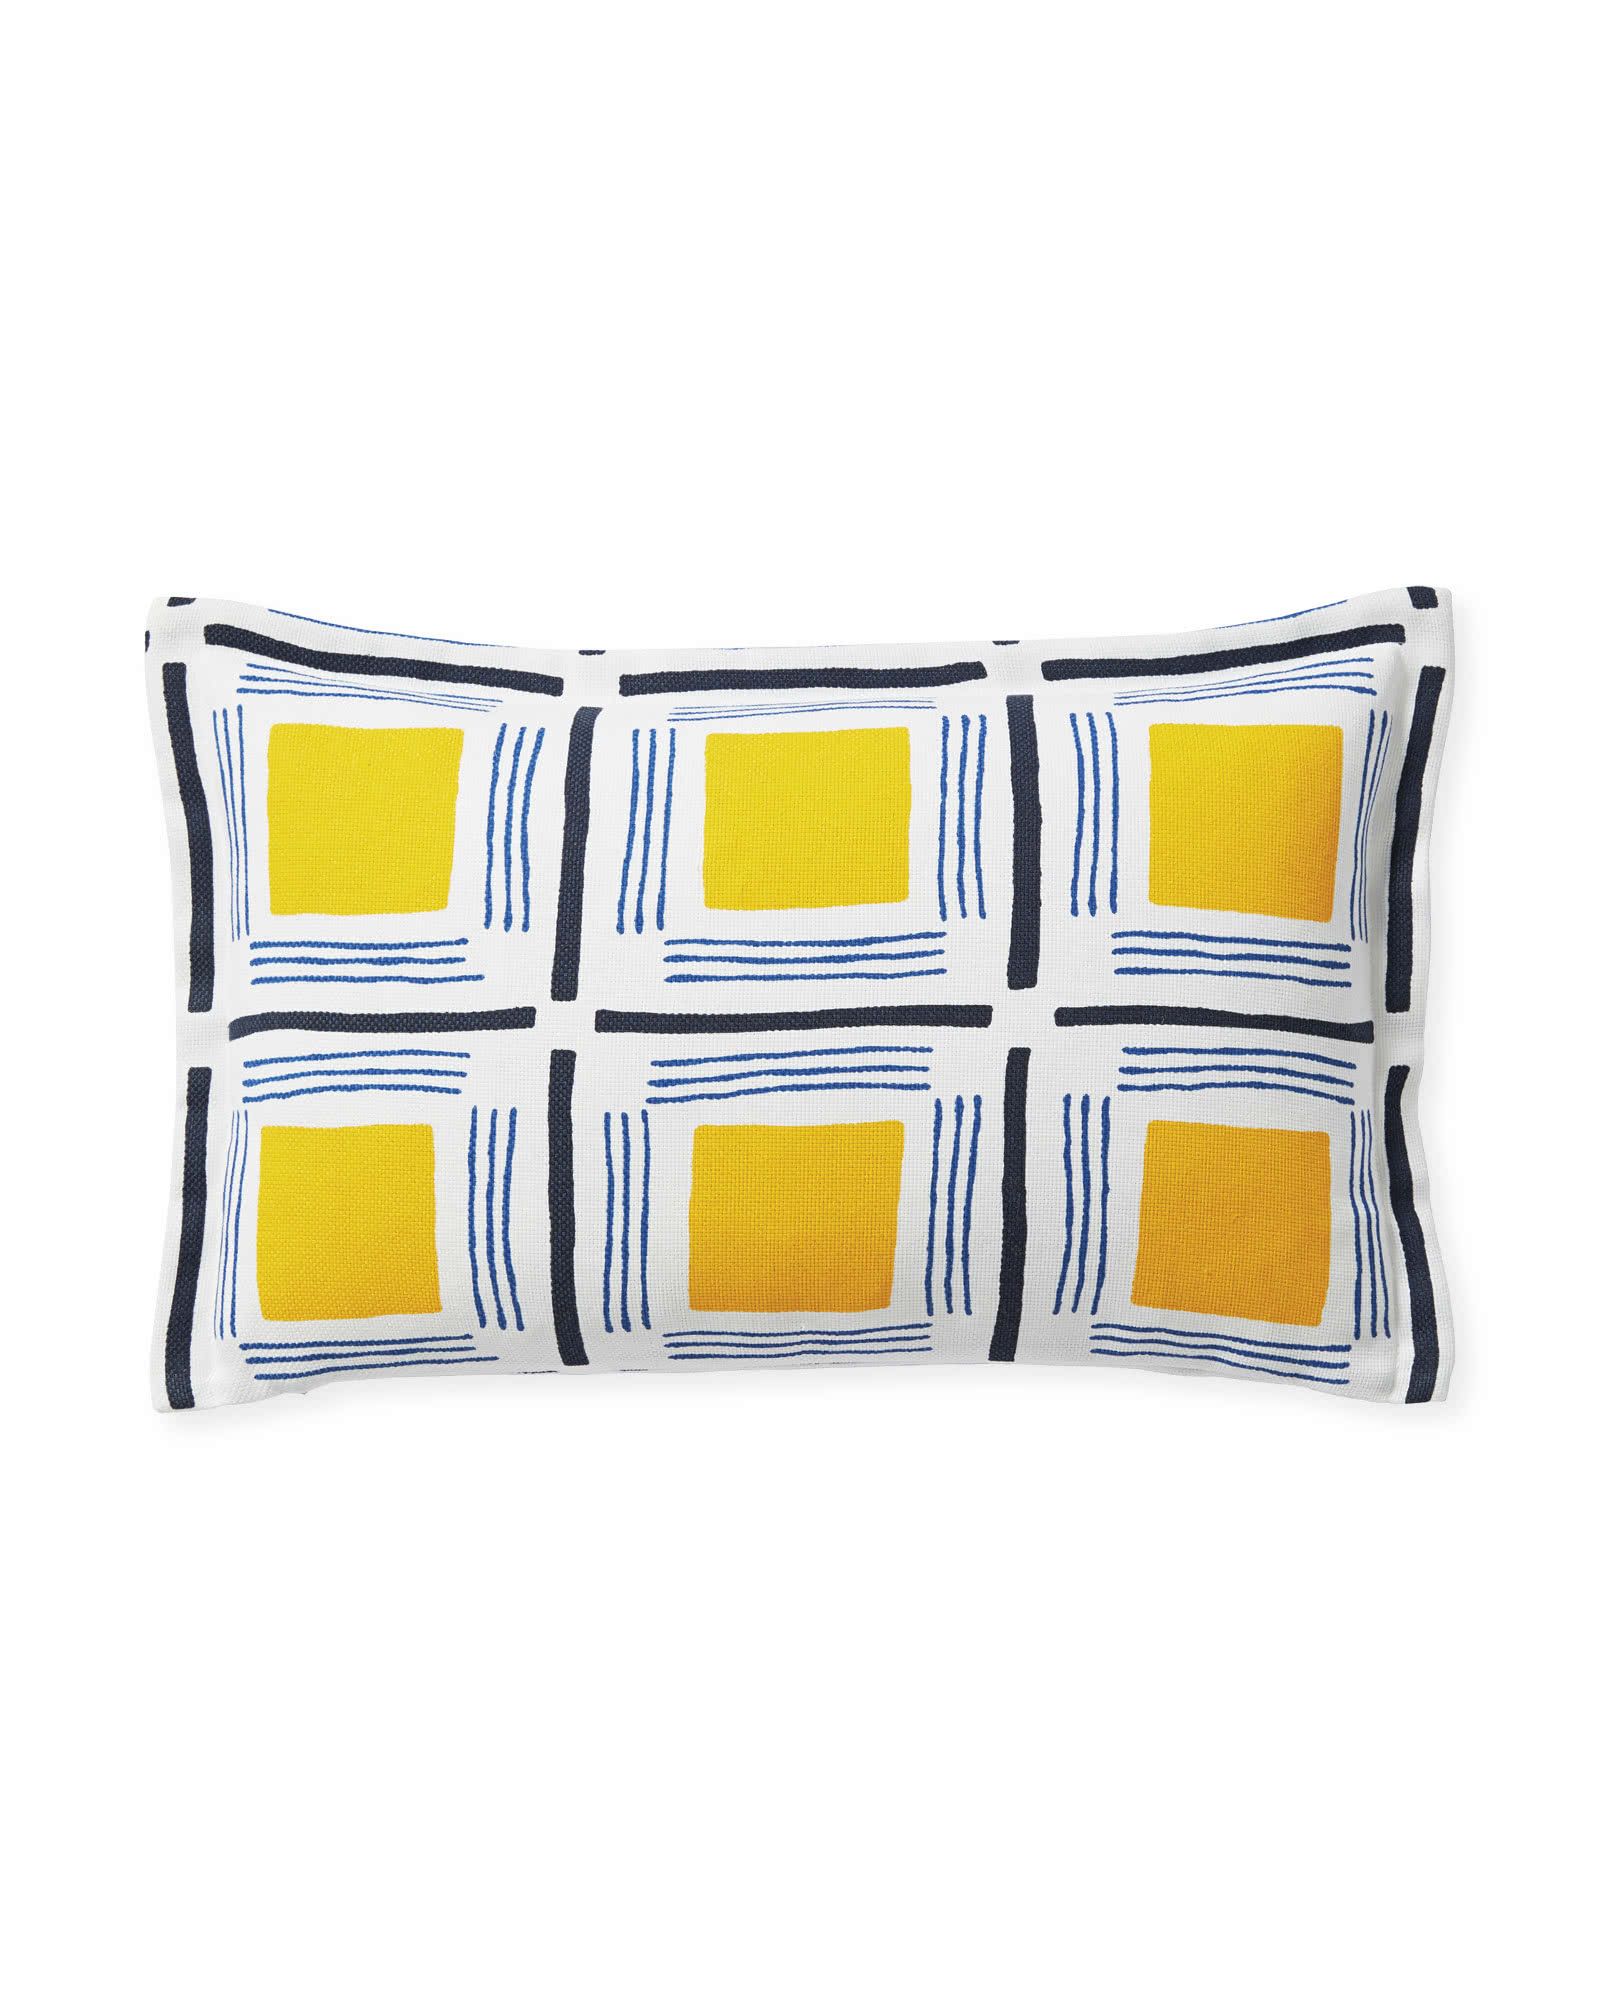 Montclair Outdoor Pillow Cover,